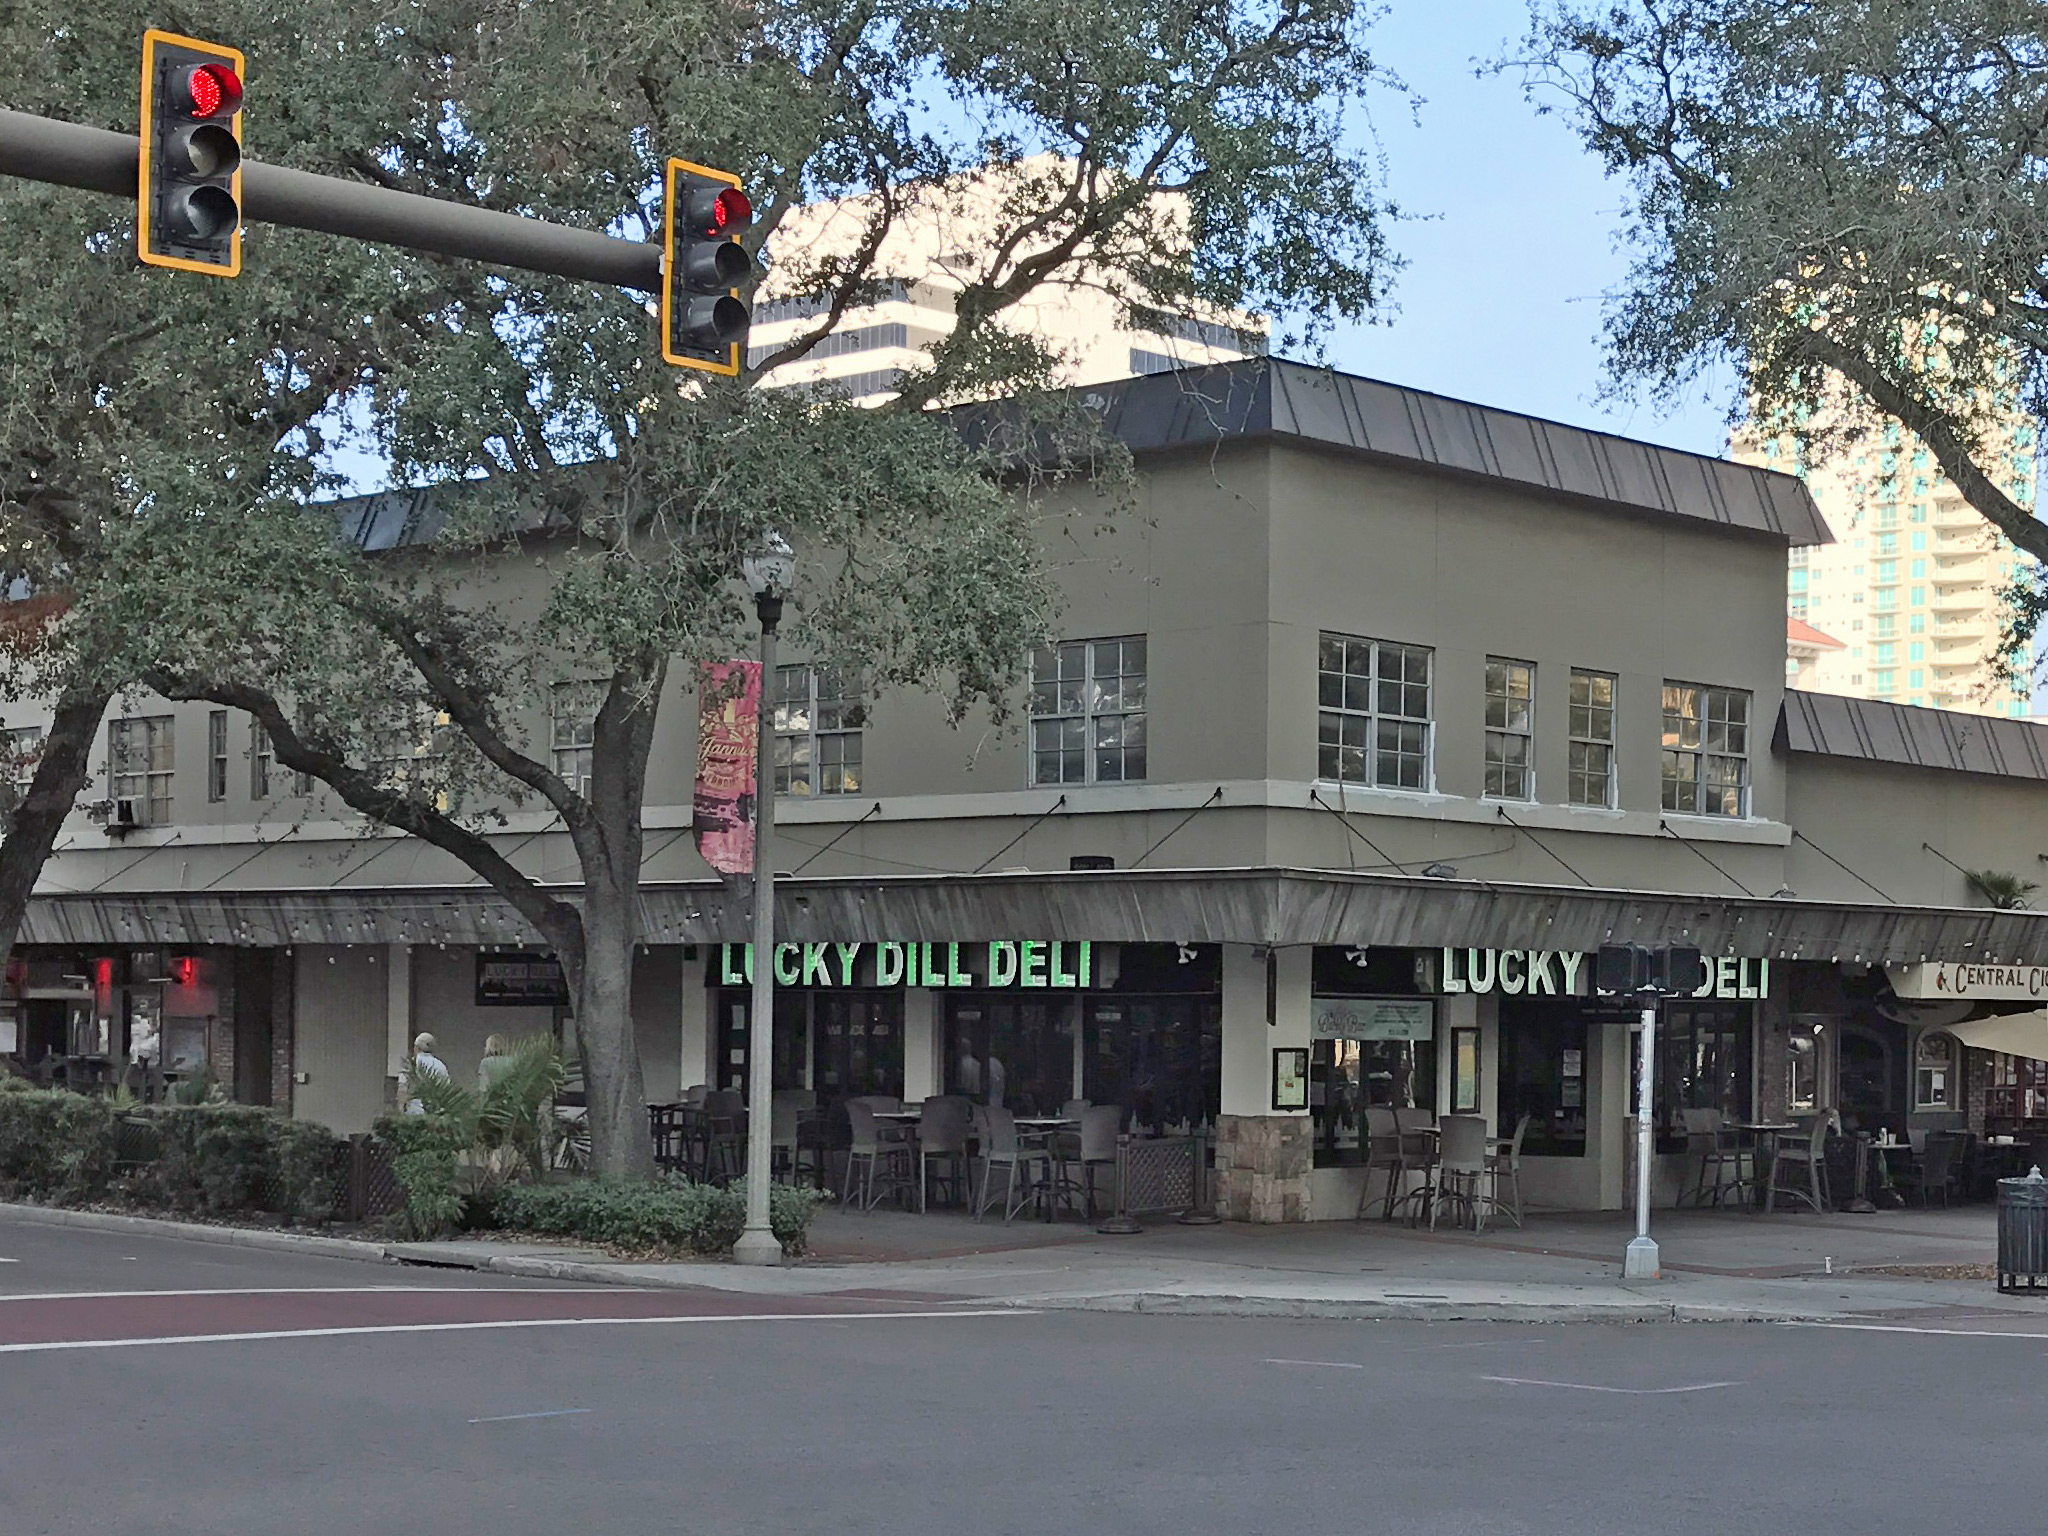 Notice the Large Second Floor of Lucky Dill That has Been Invisible in Plain Sight?